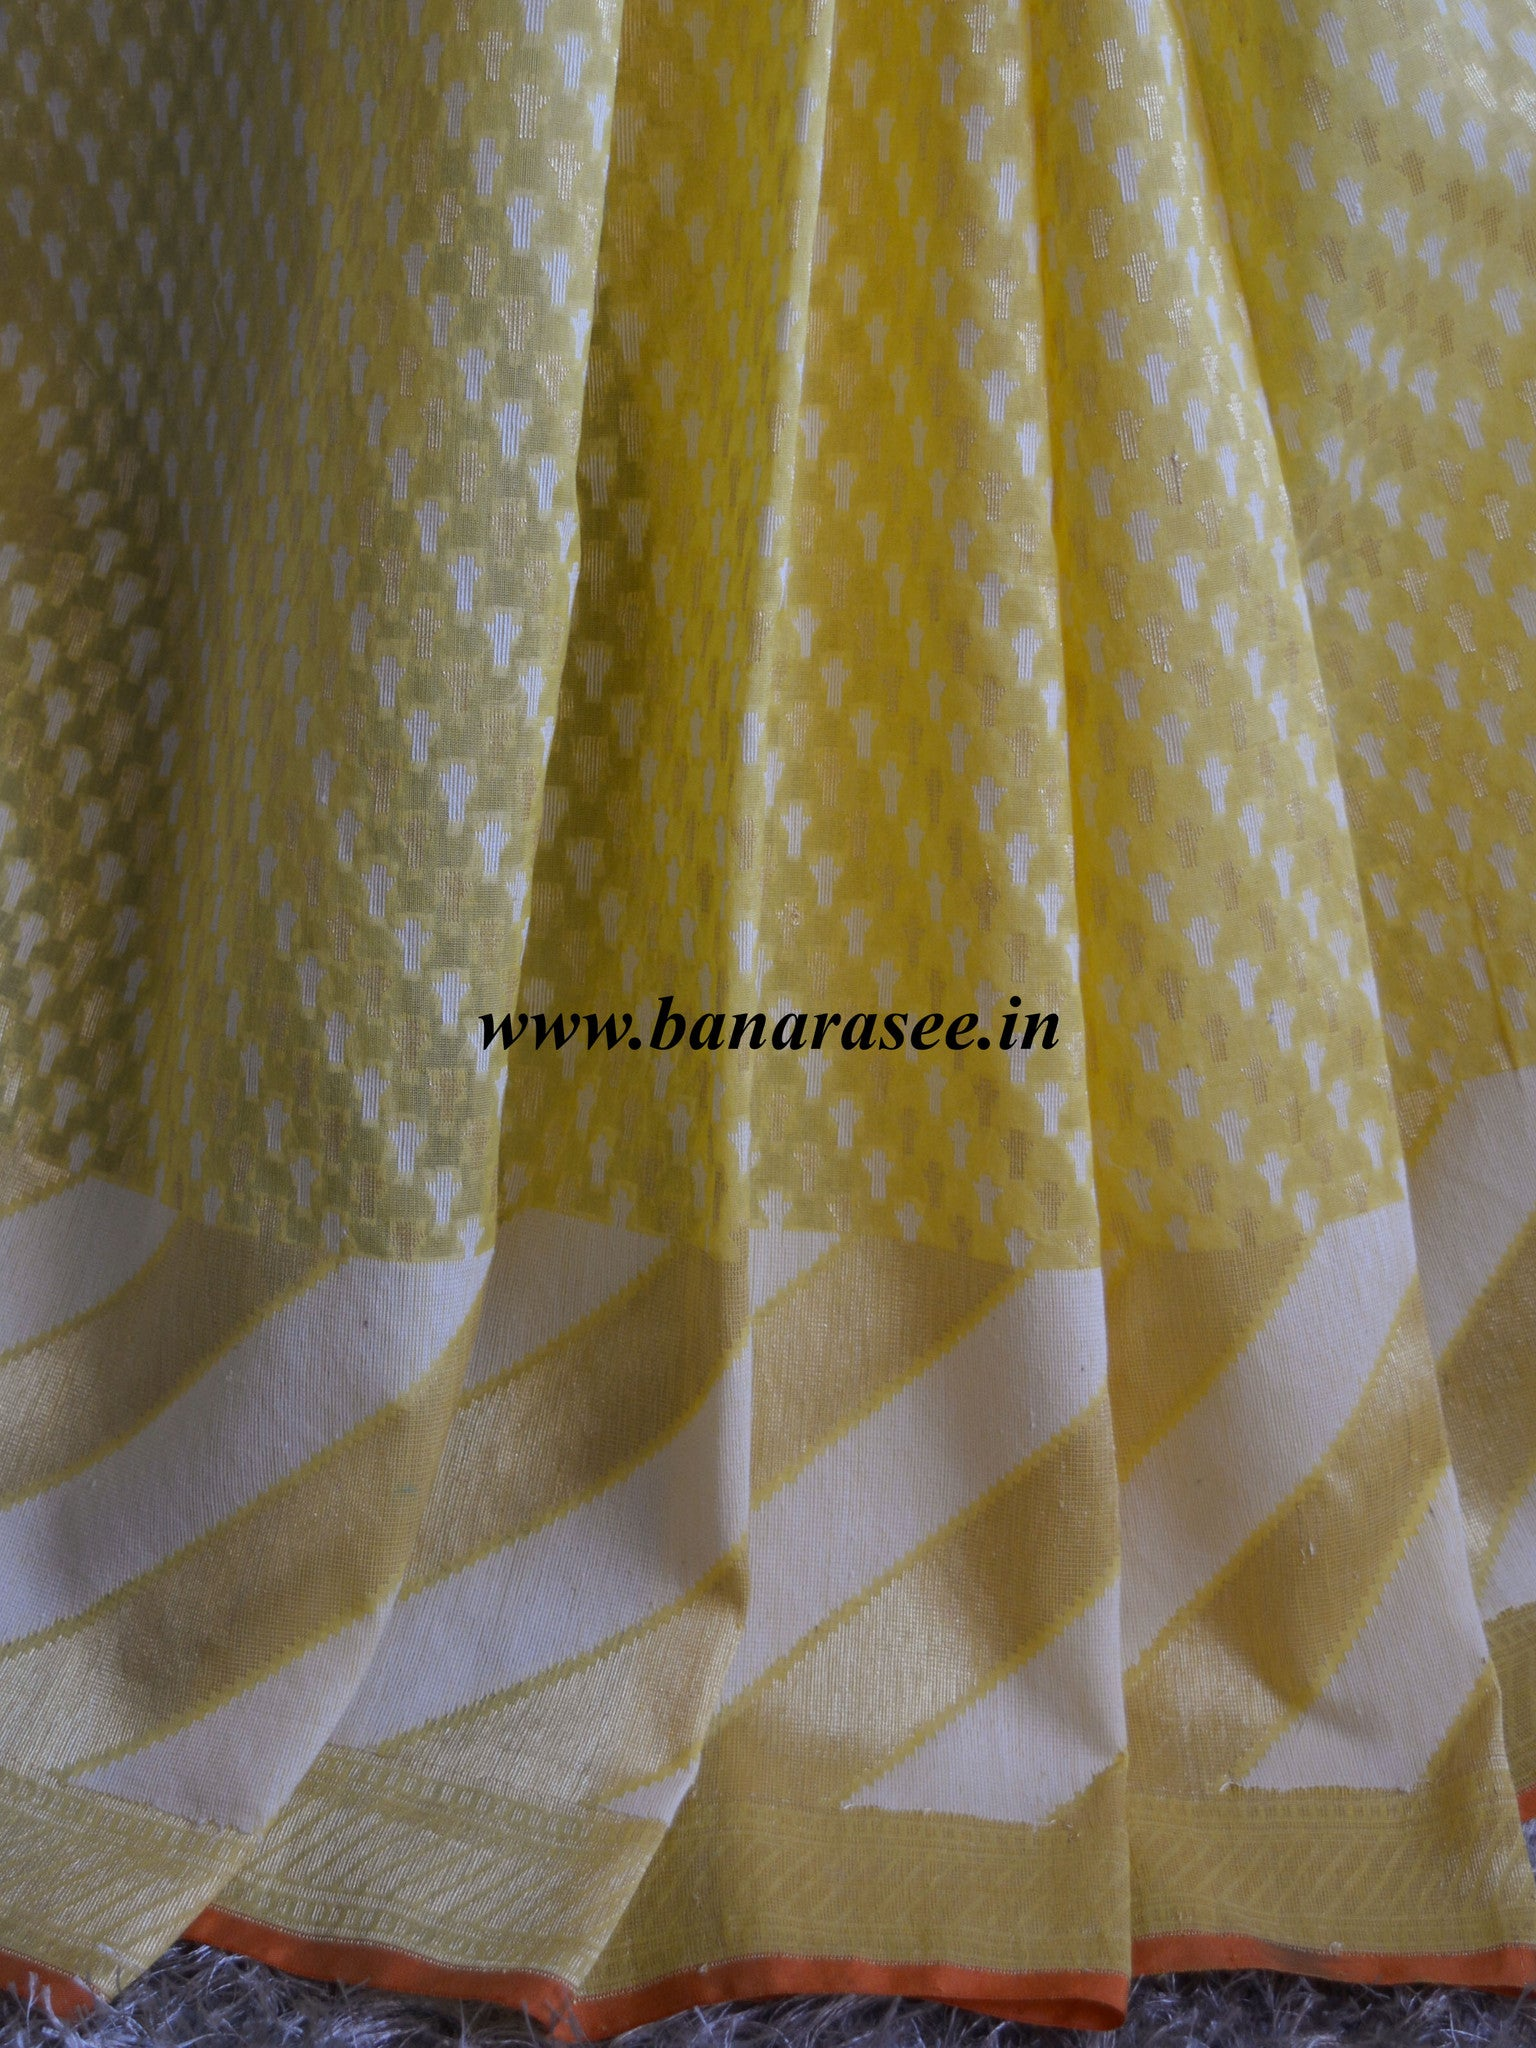 Banarasee/Banarasi Pure Handloom Cotton Silk Jamdani Sari With Zari Weaving-Lemon Yellow